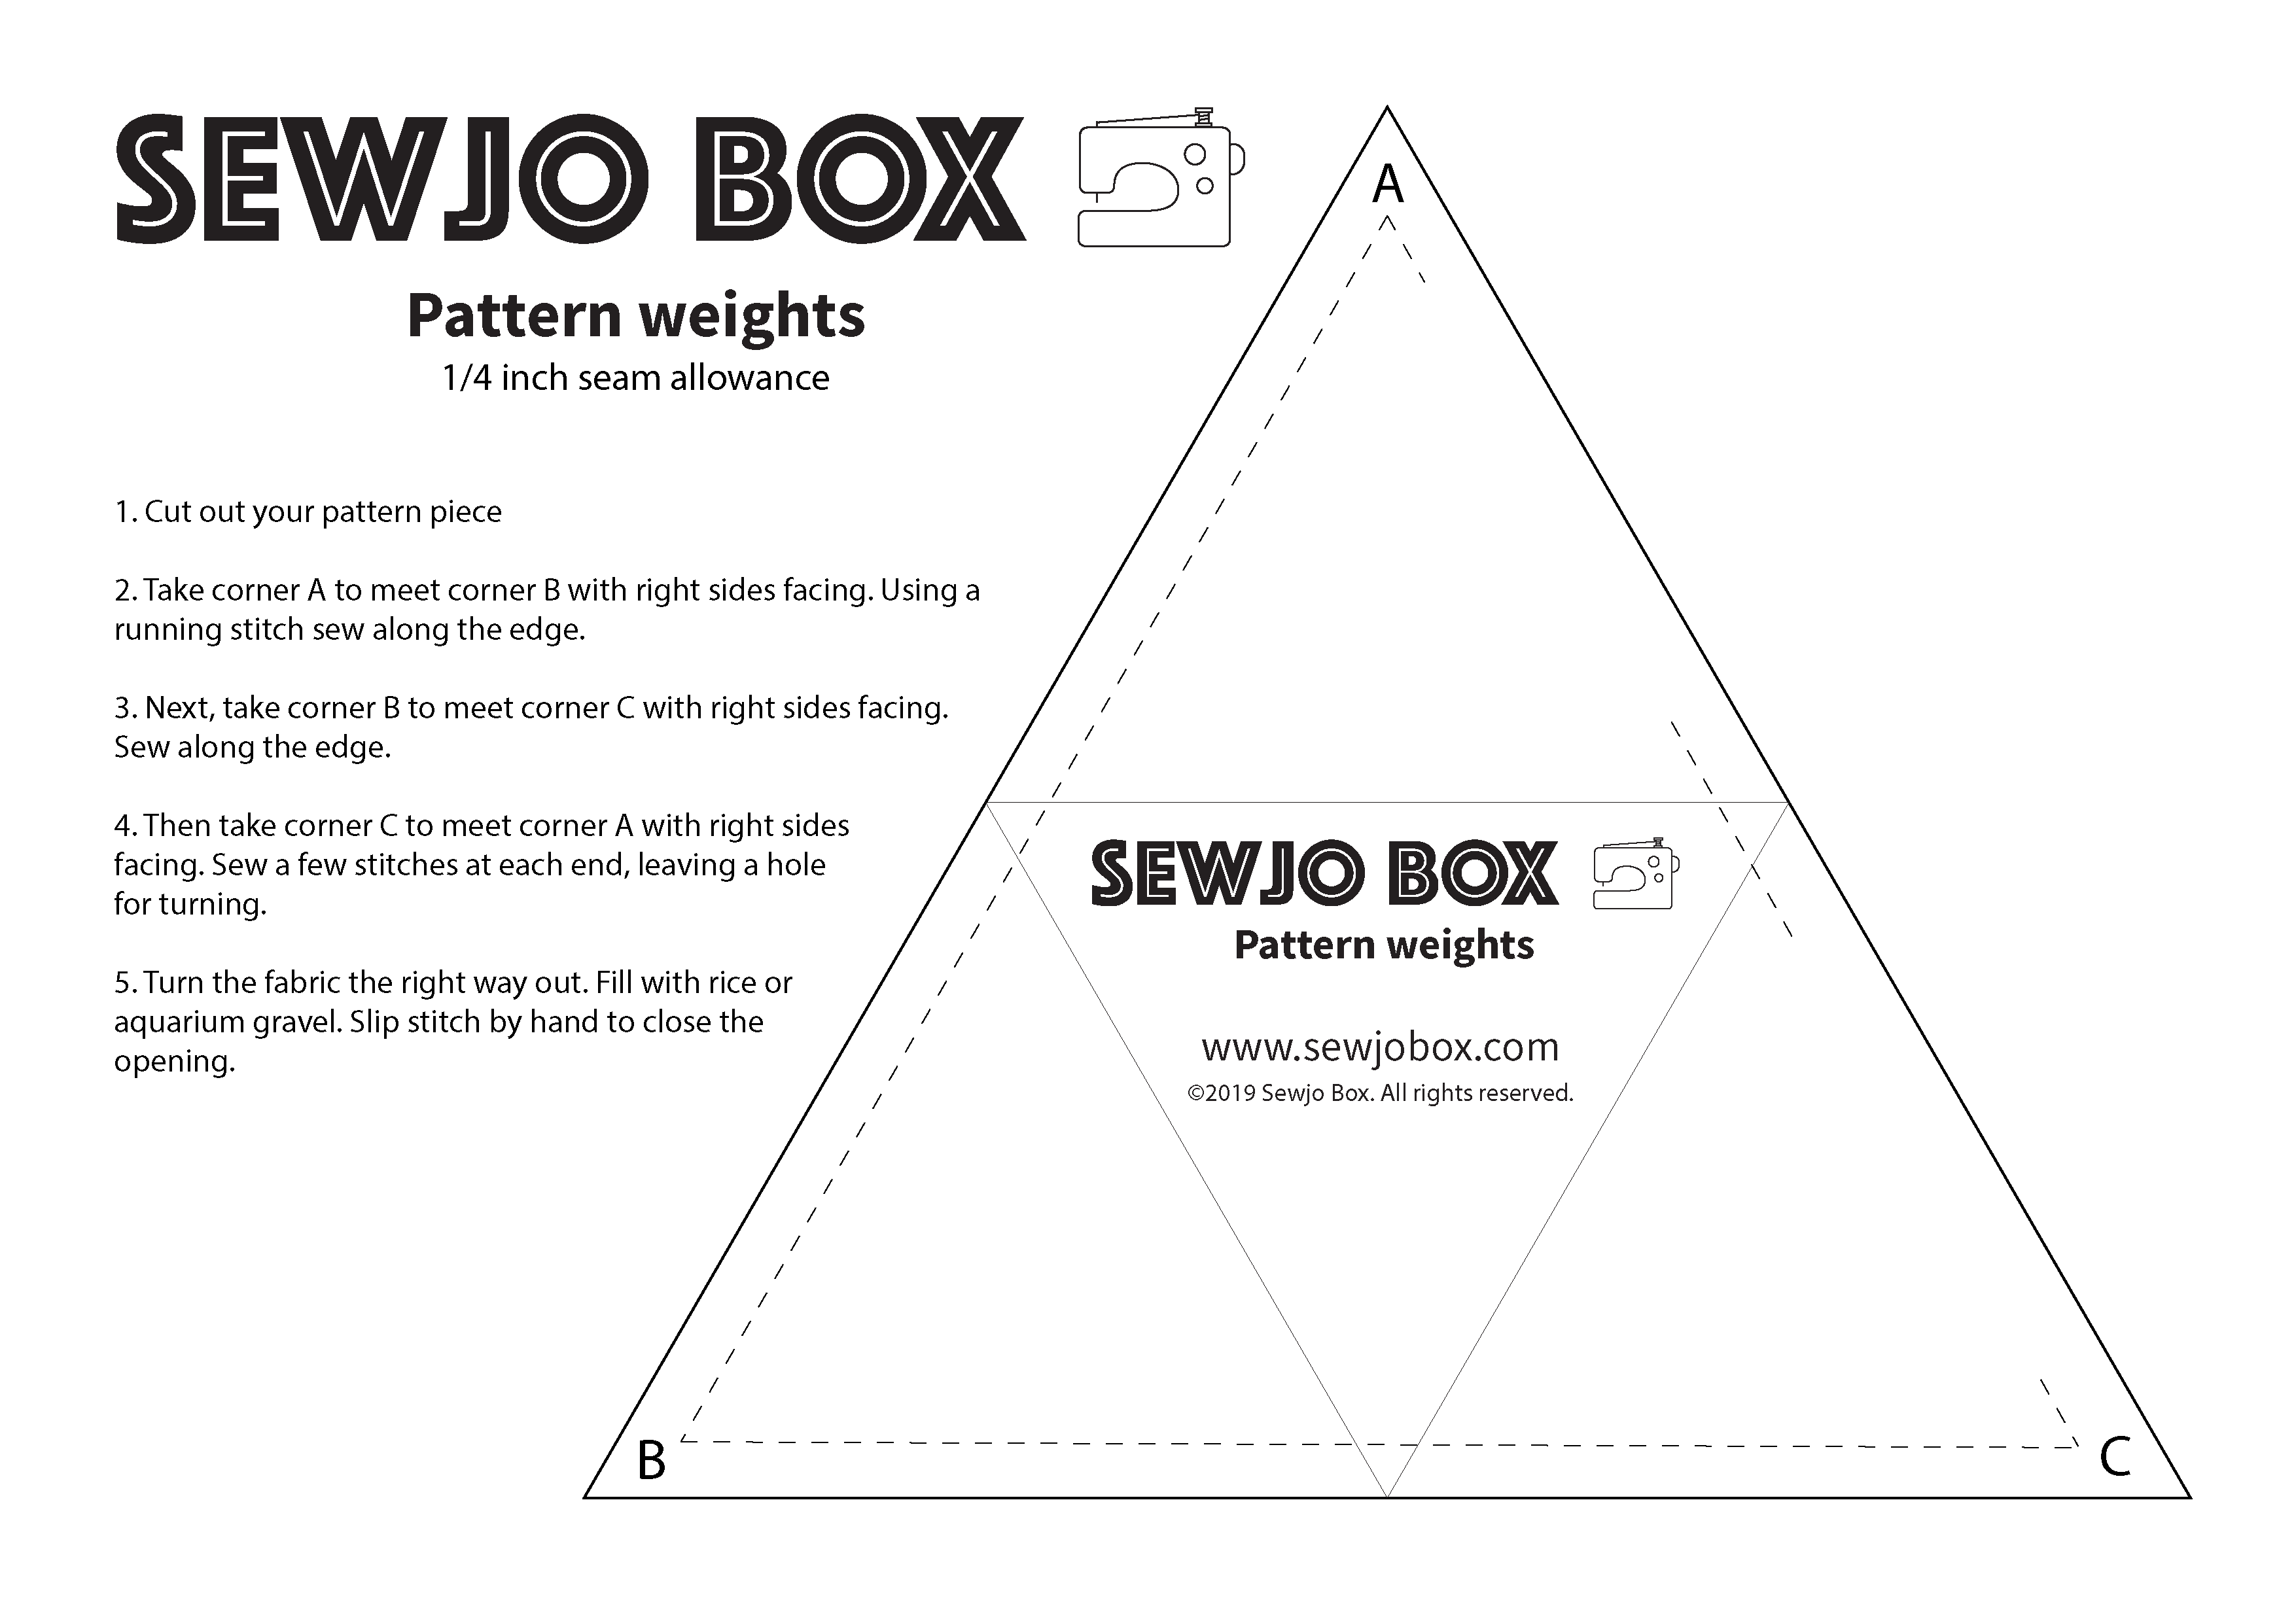 Free sewing pattern - Fabric weights